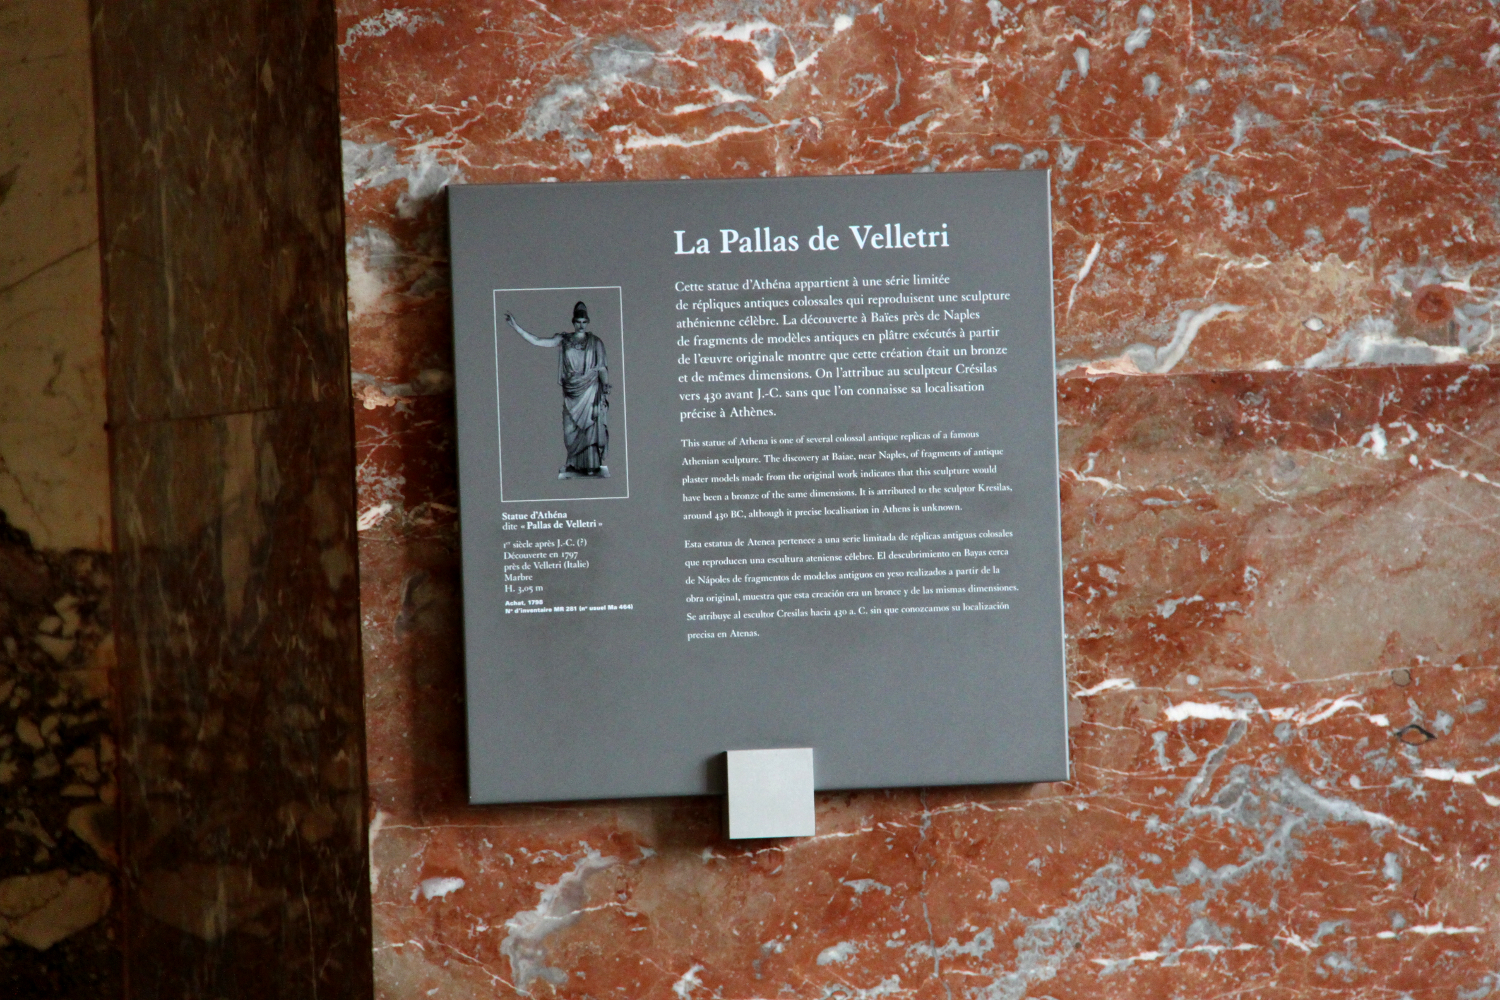 La Palas de Velletri, Louvre Museum, Paris - explanation